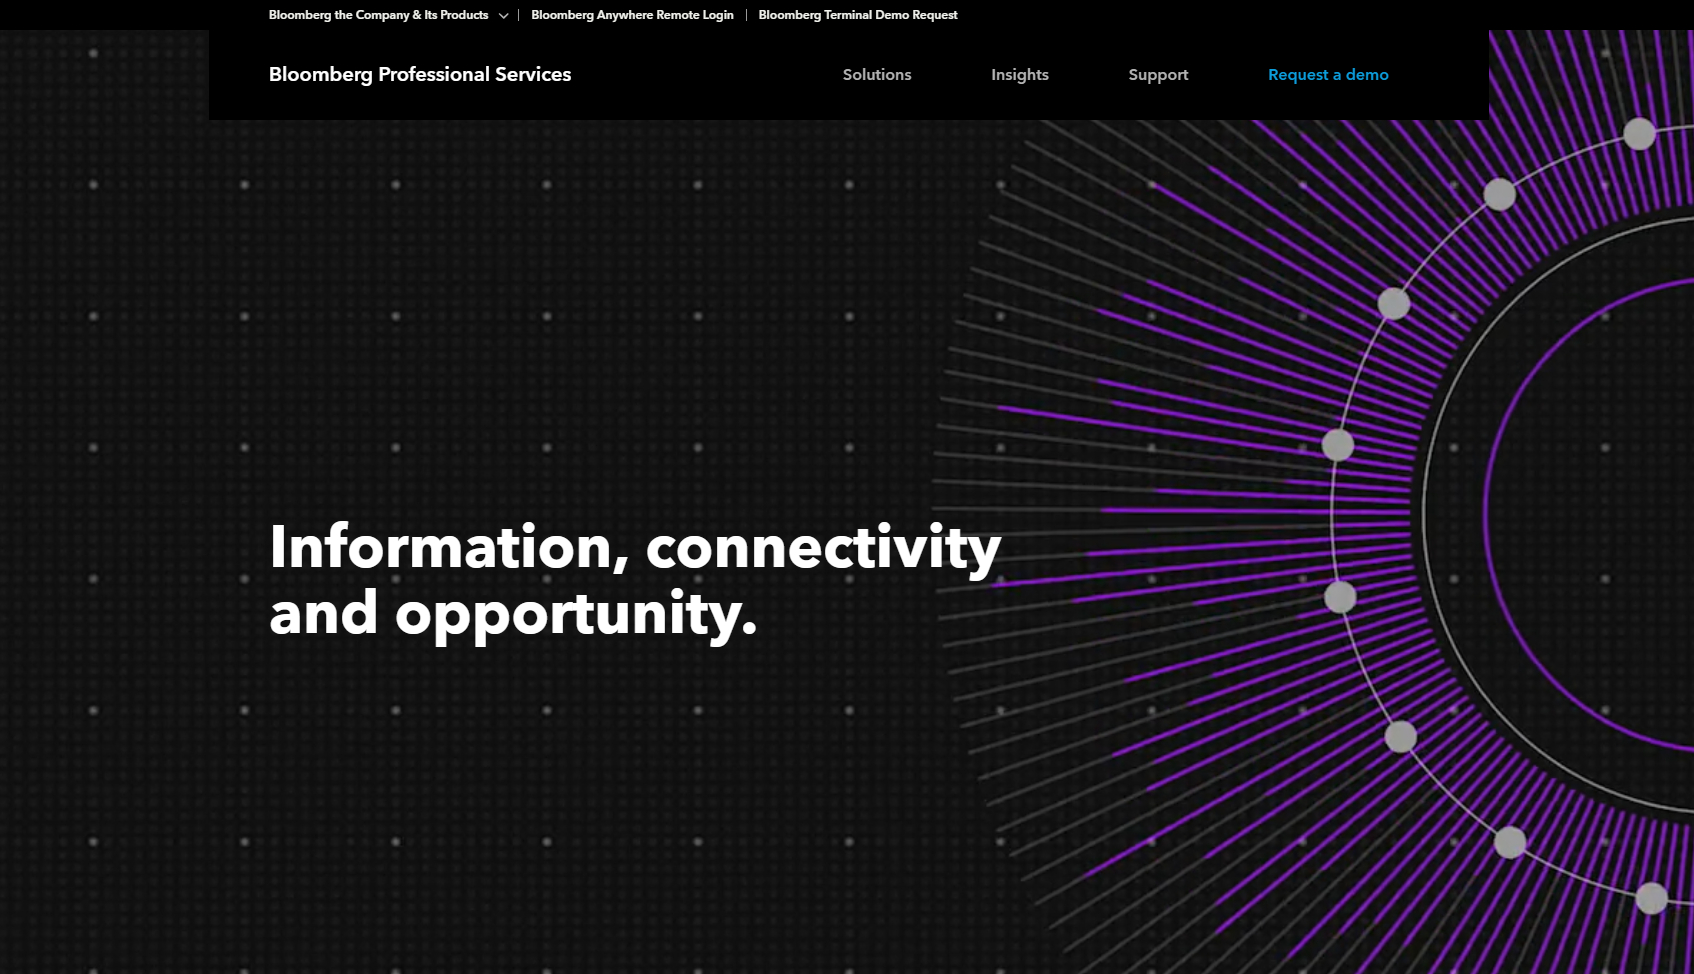 Bloomberg Professional Services | Bloomberg Finance L.p. within Bloomberg Economic Data